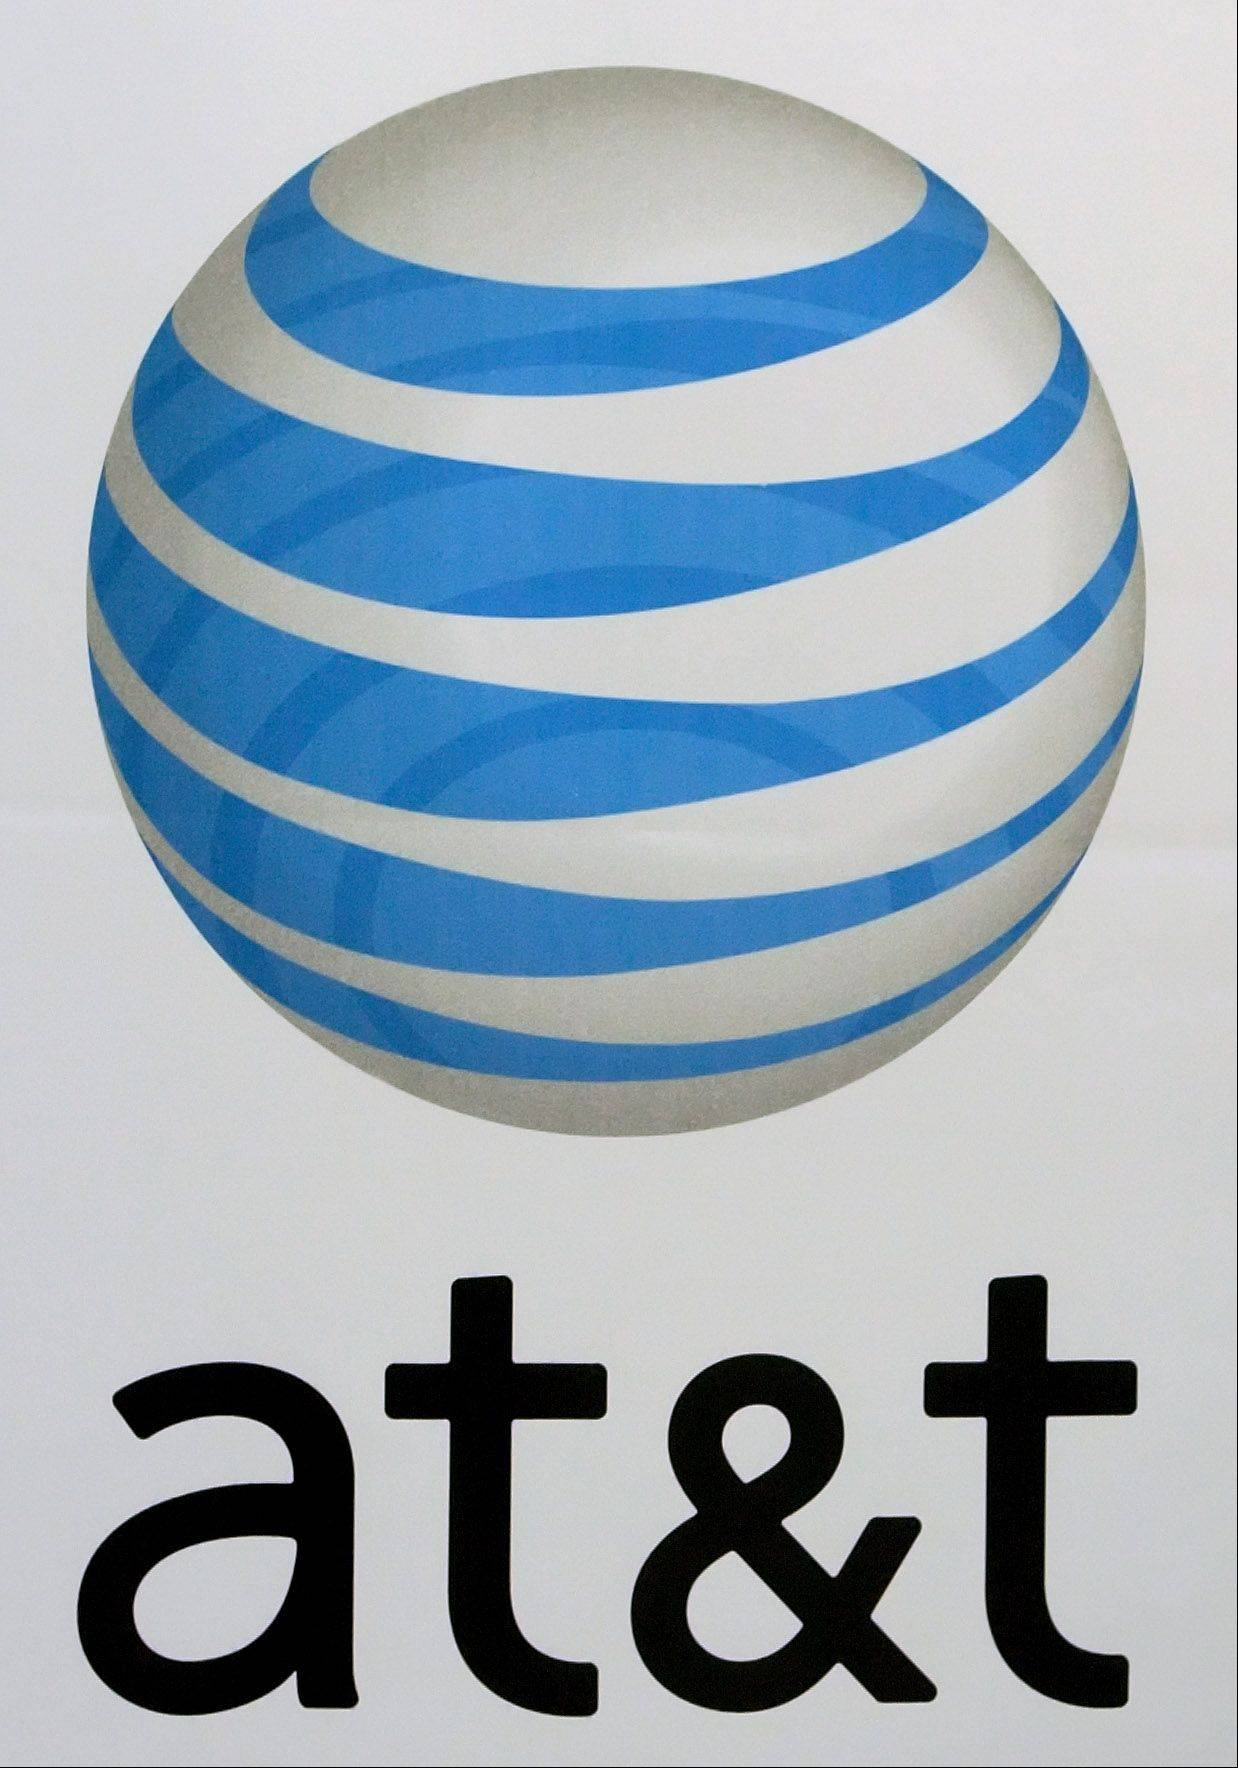 AT&T Inc. executives are laying the groundwork internally for a potential takeover of Vodafone Group Plc next year, mapping out a strategy for a complex deal with Europe's largest mobile carrier, people familiar with the situation said.